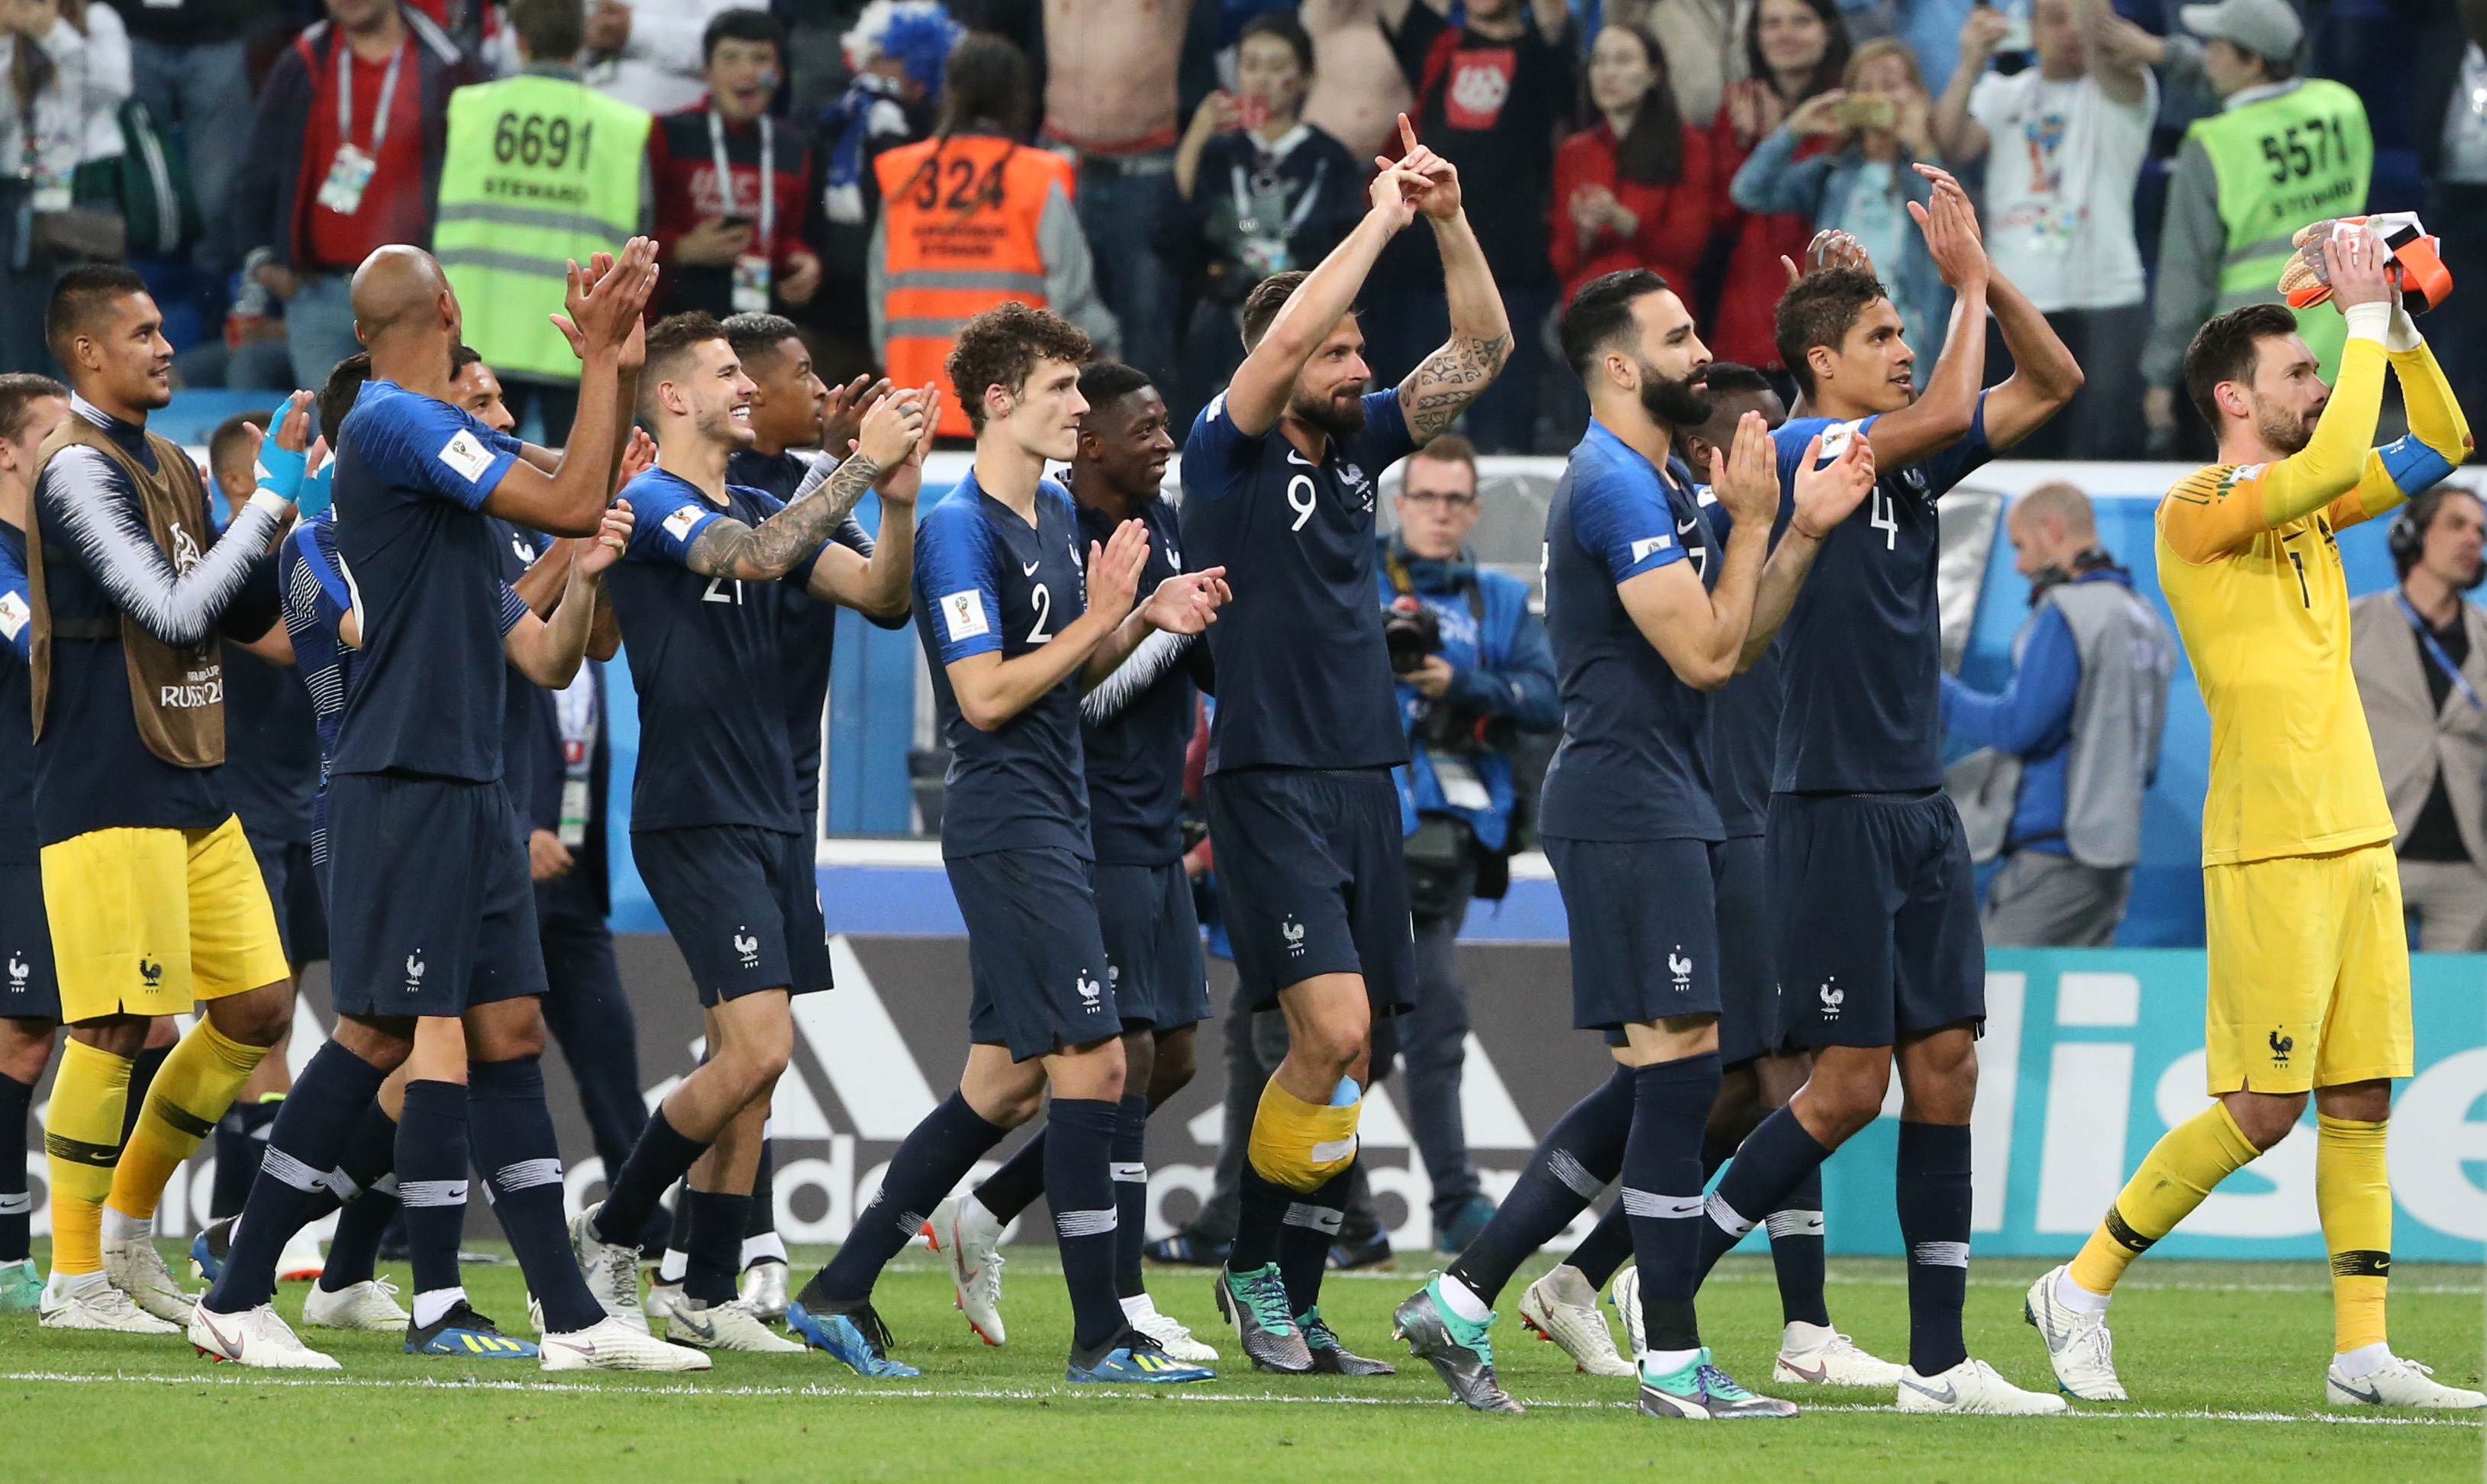 France football team at FIFA World Cup